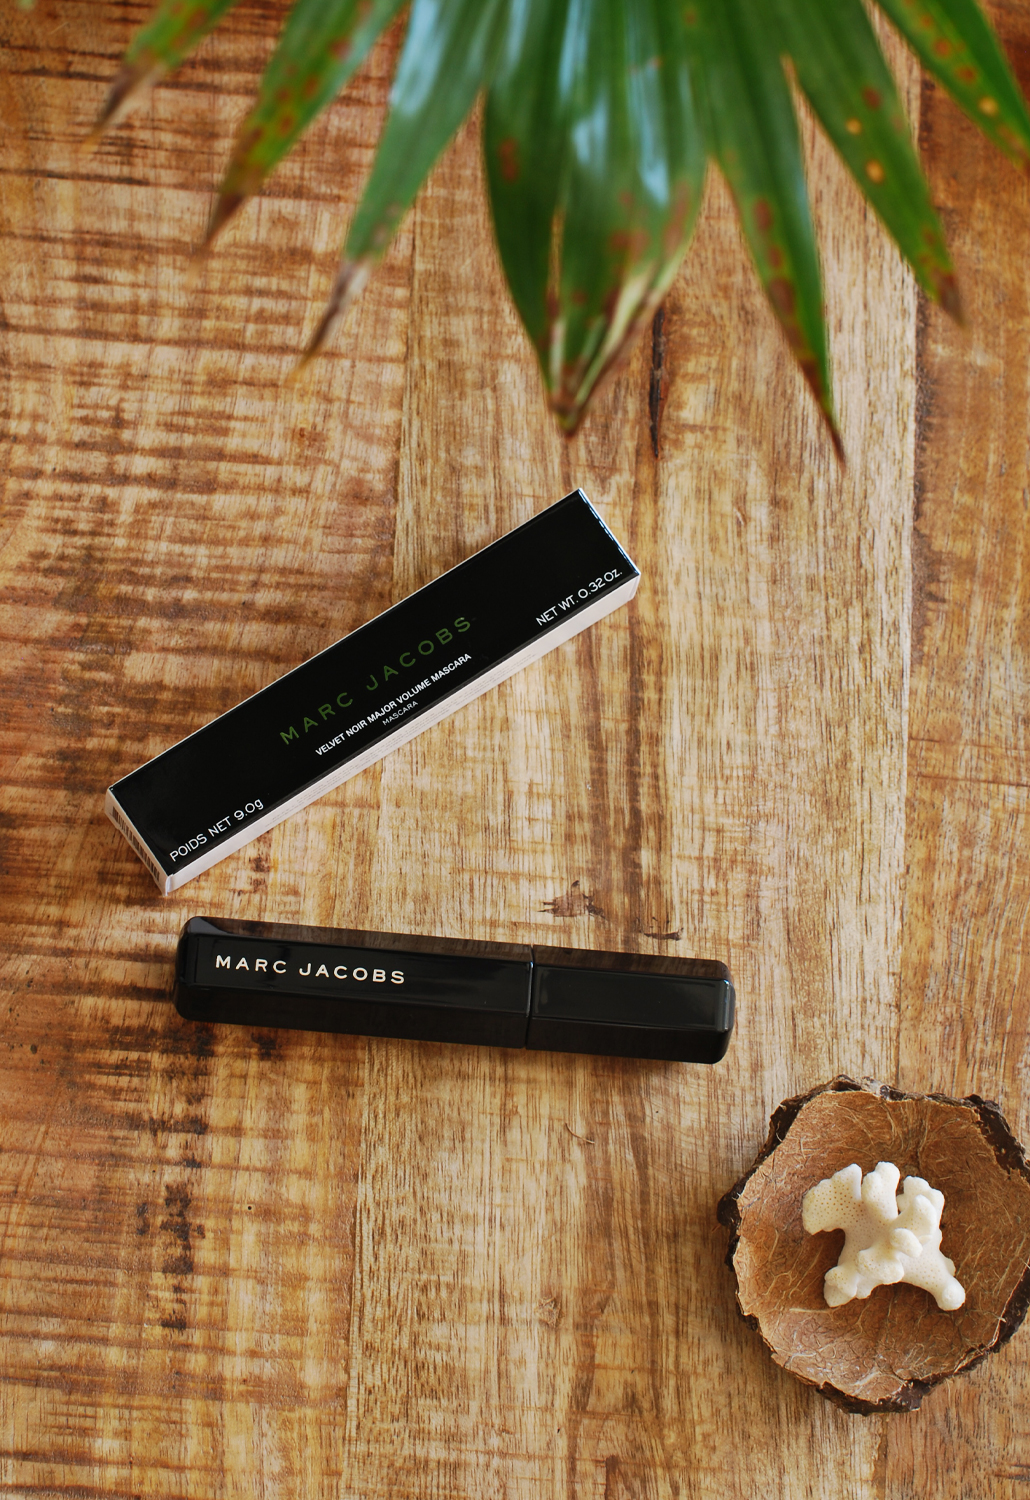 Velvet Noir Marc Jacobs Beauty mascara